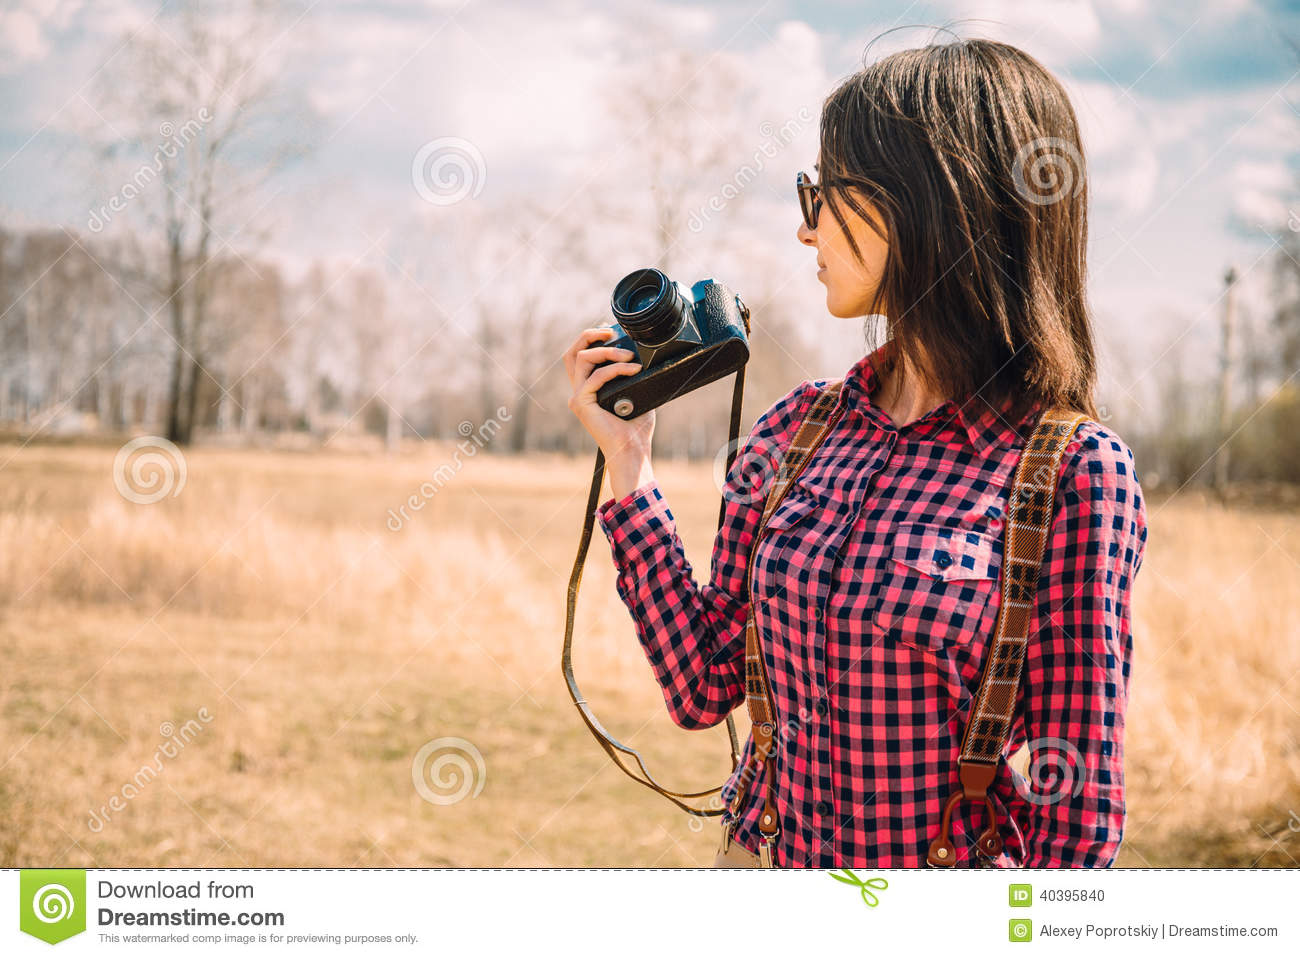 Hipster girl with photo camera on nature